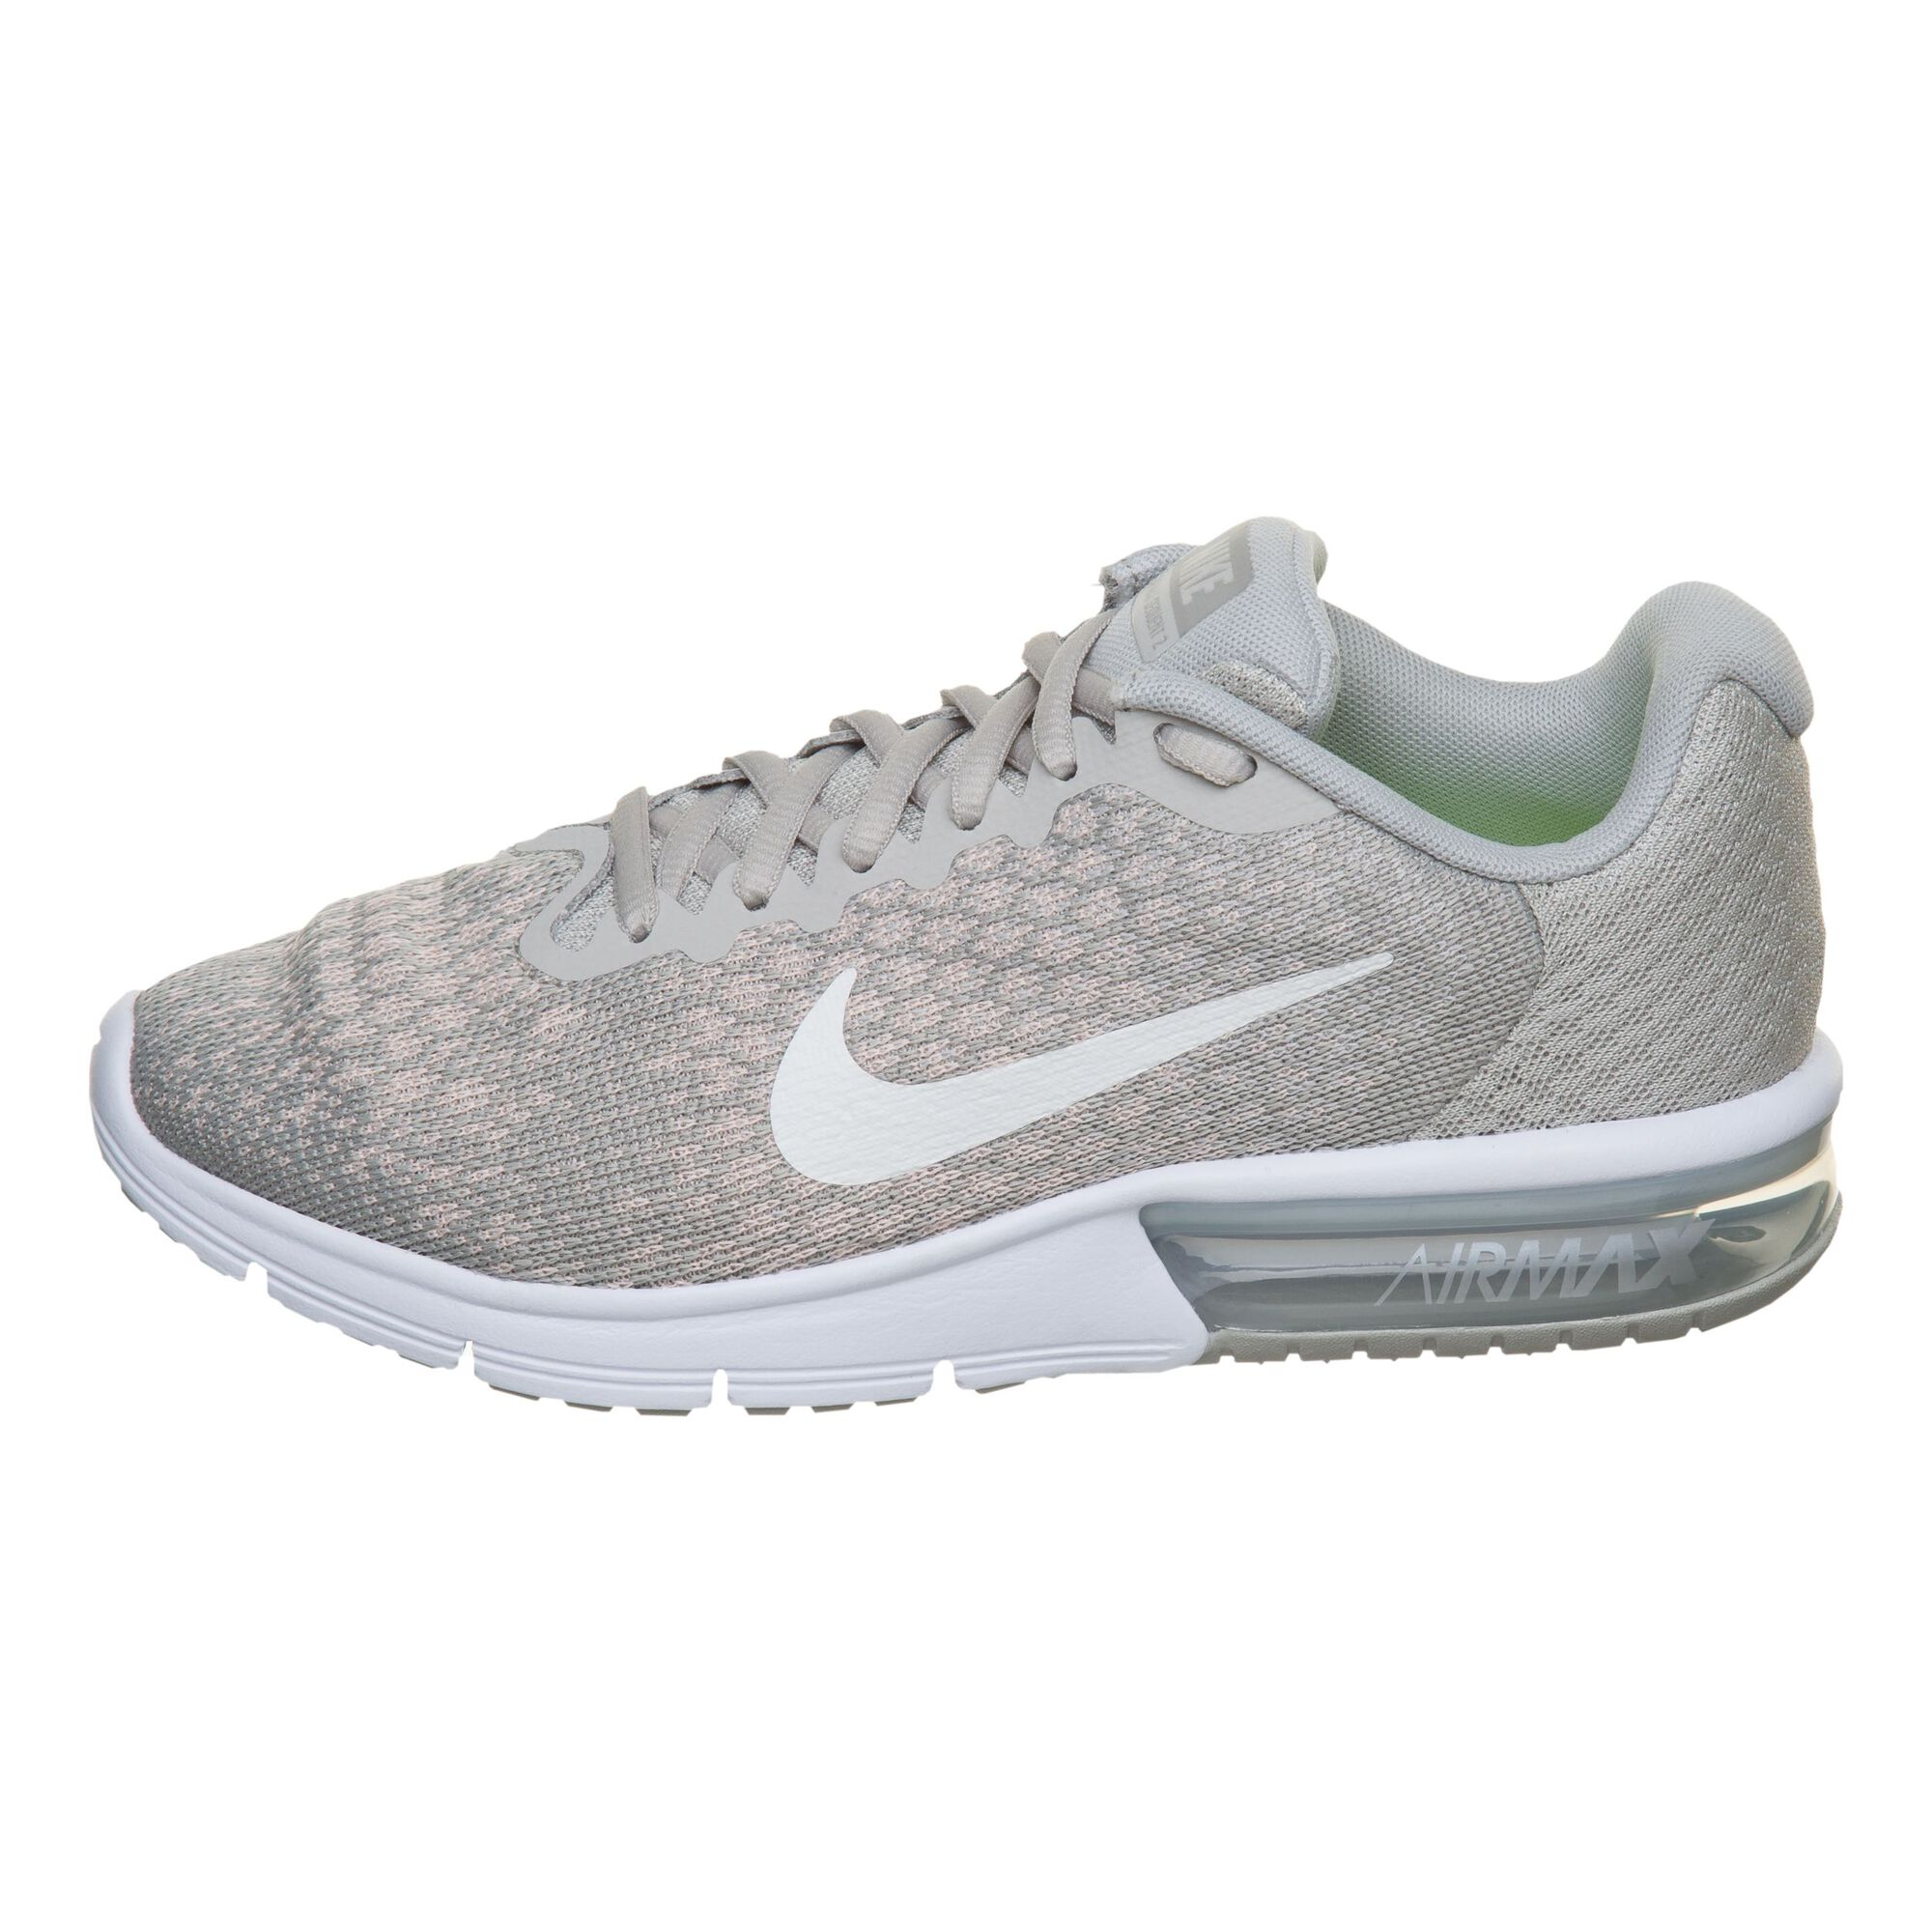 buy Nike Air Max Sequent 2 Neutral Running Shoe Women - Beige, White ... 3b68af8250